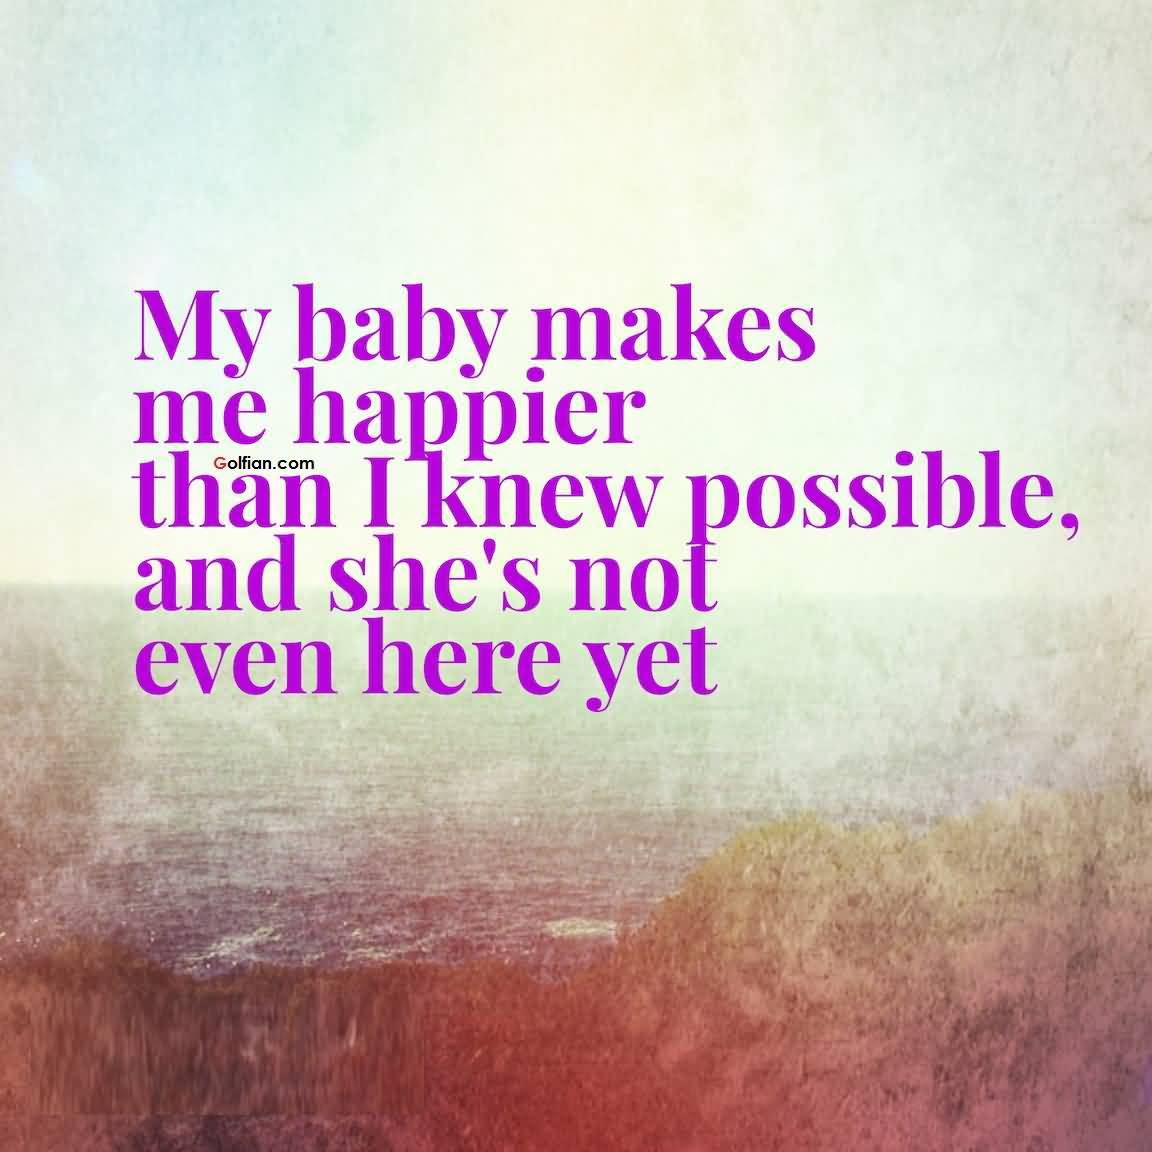 Quotes Short Short Baby Quotes Meme Image 16  Quotesbae